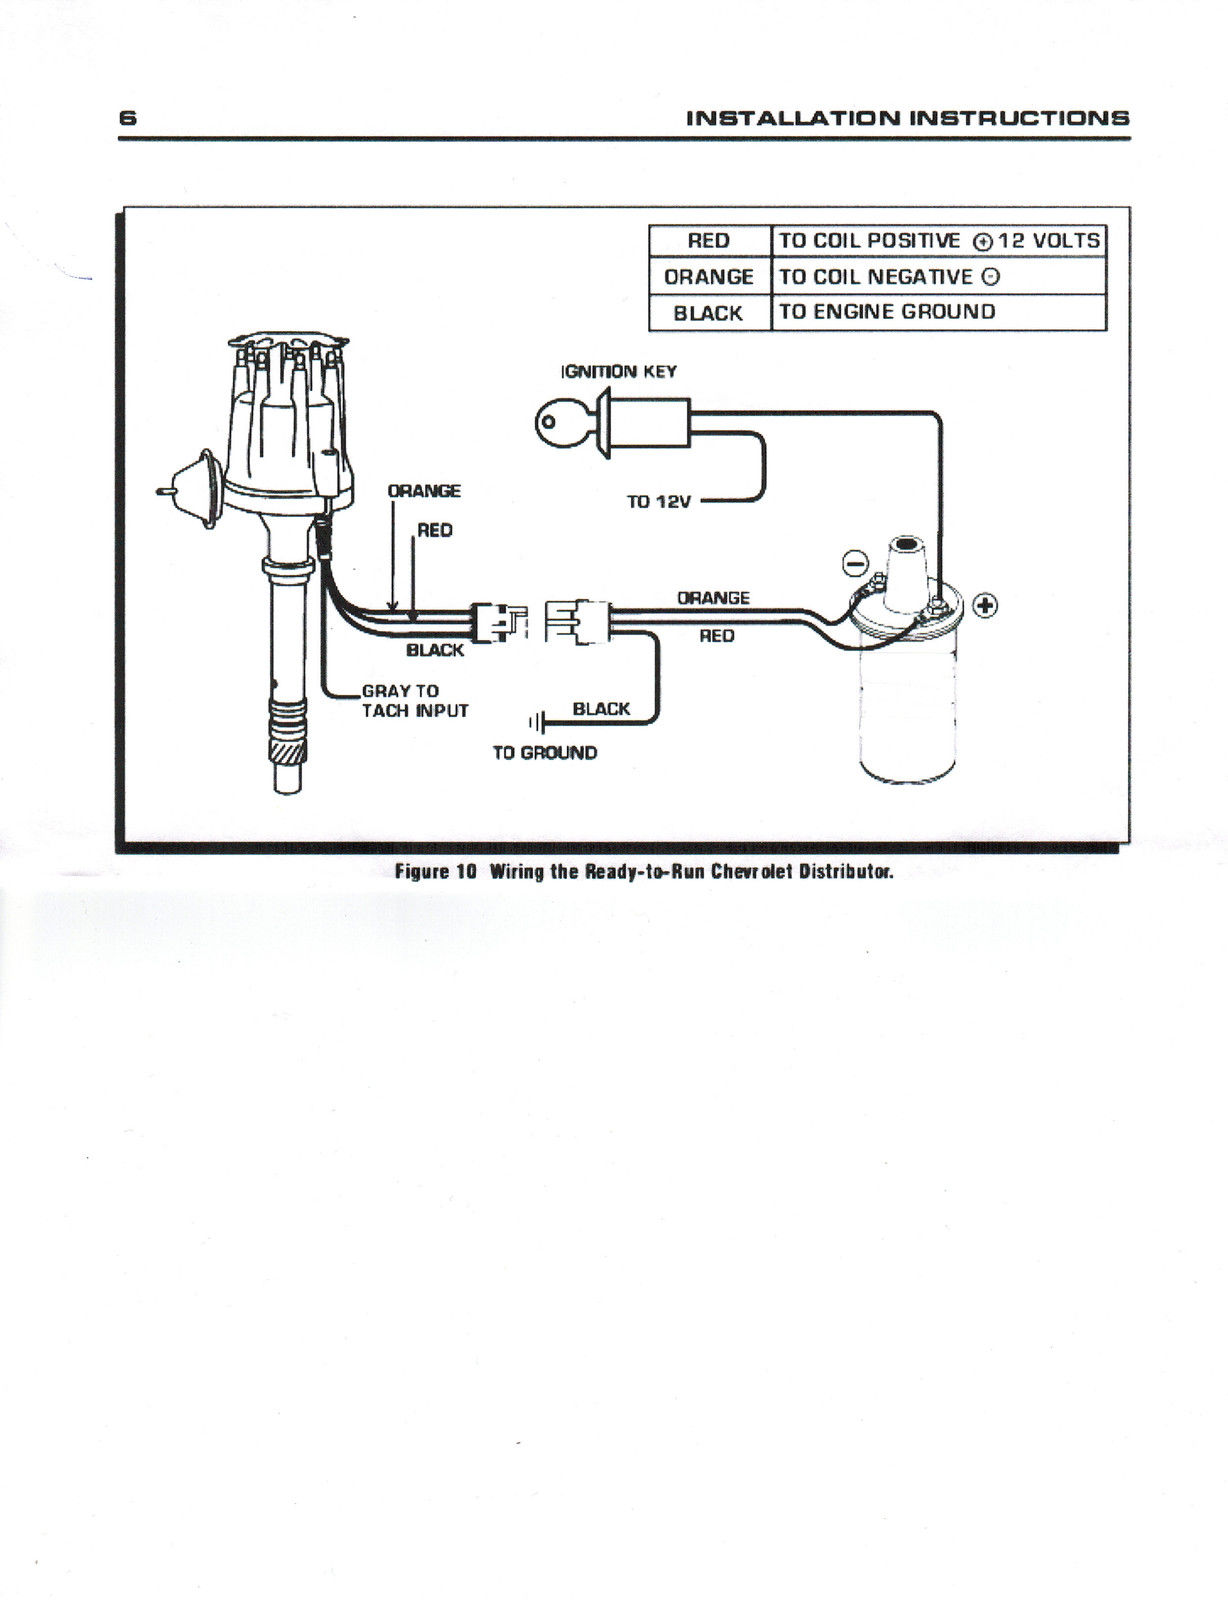 [SCHEMATICS_4LK]  FORD 351C-351M-400M-429-460 Pro Series HEI Distributor & 8mm Spark Plug  Wires - SwapMeetParts | Ford 460 Coil Wire Diagram |  | SwapMeetParts